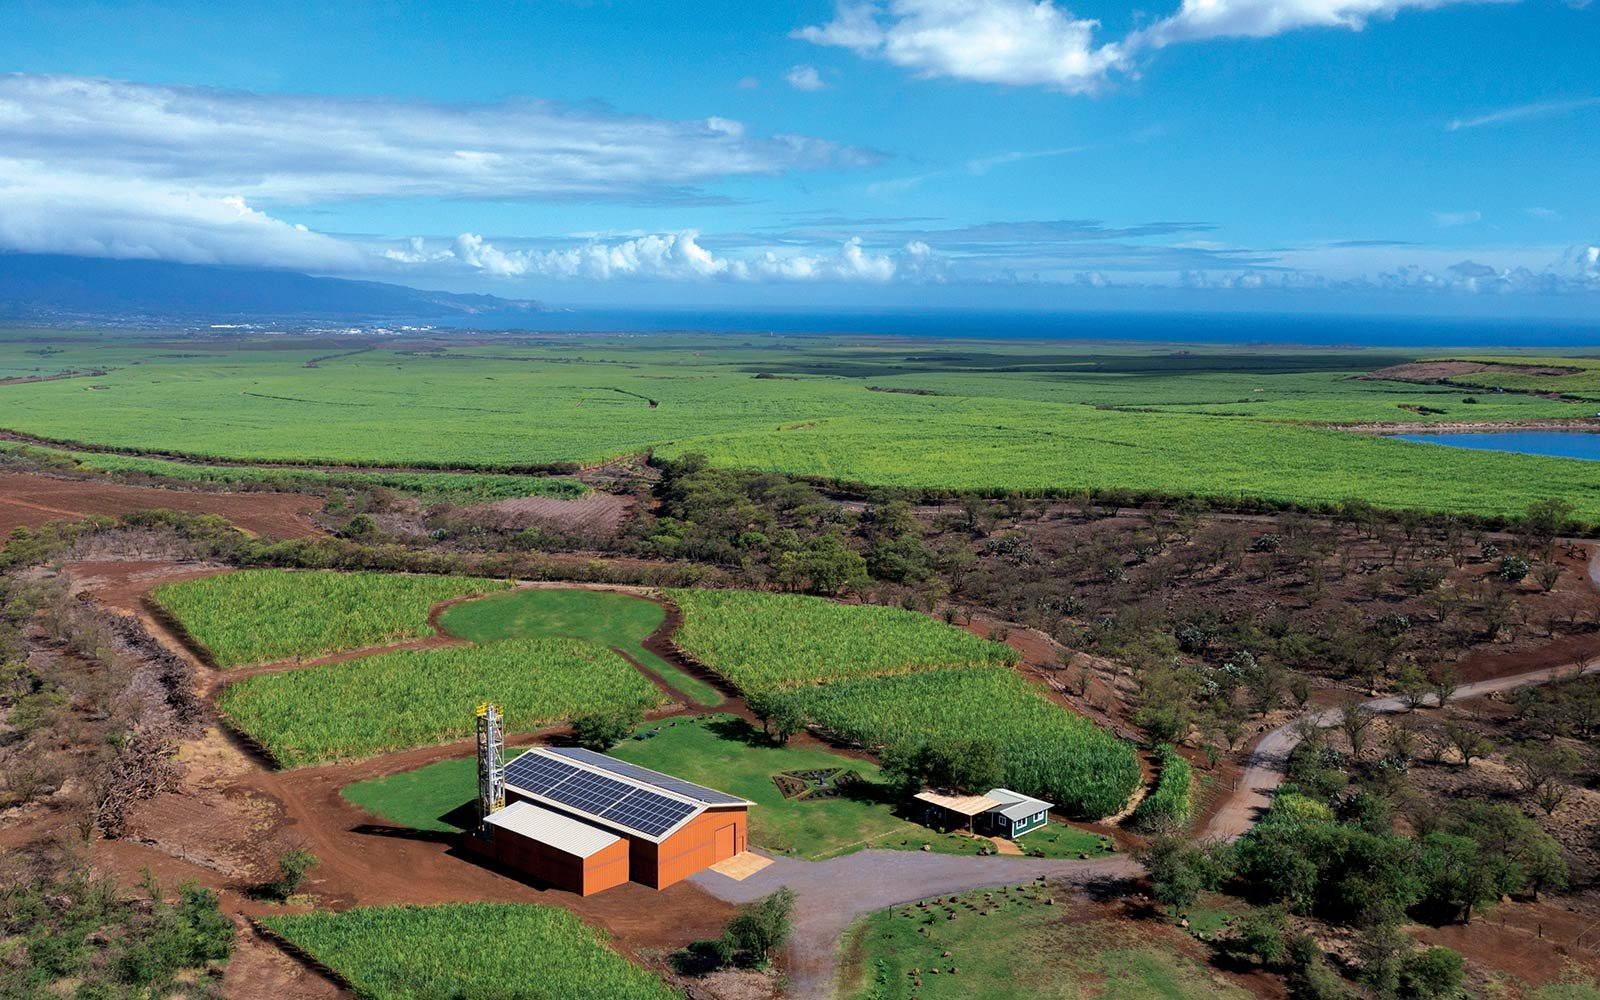 The Hawaii Sea Spirits Organic Farm and Distillery, Kula, HI